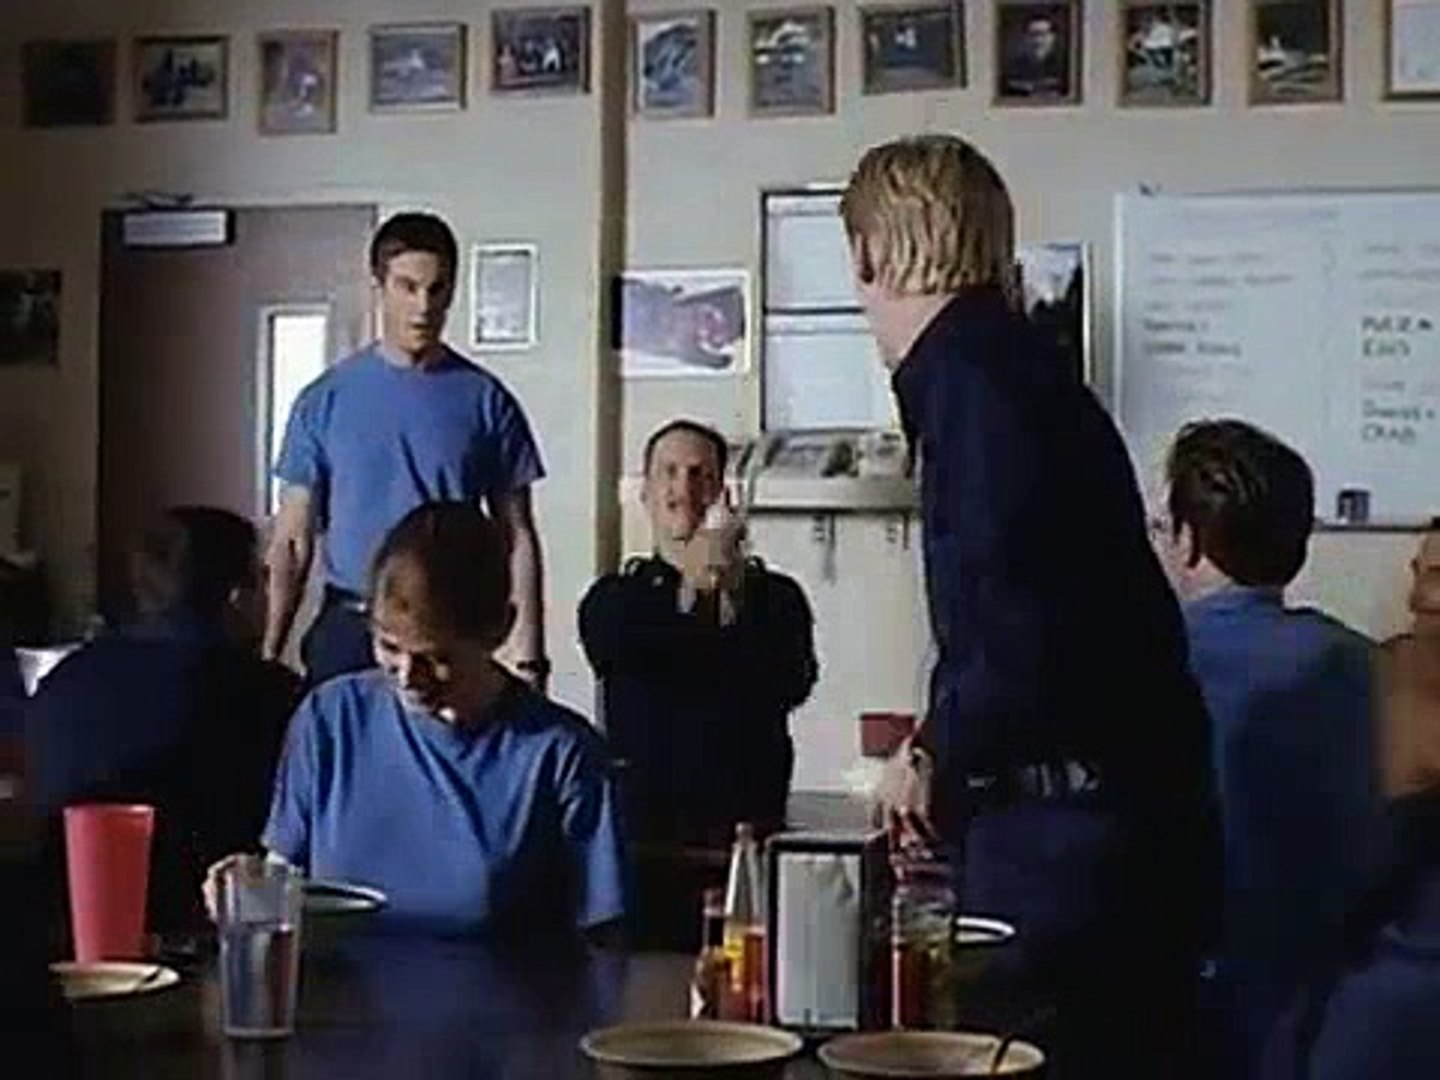 The Pretender S01E10 - video Dailymotion